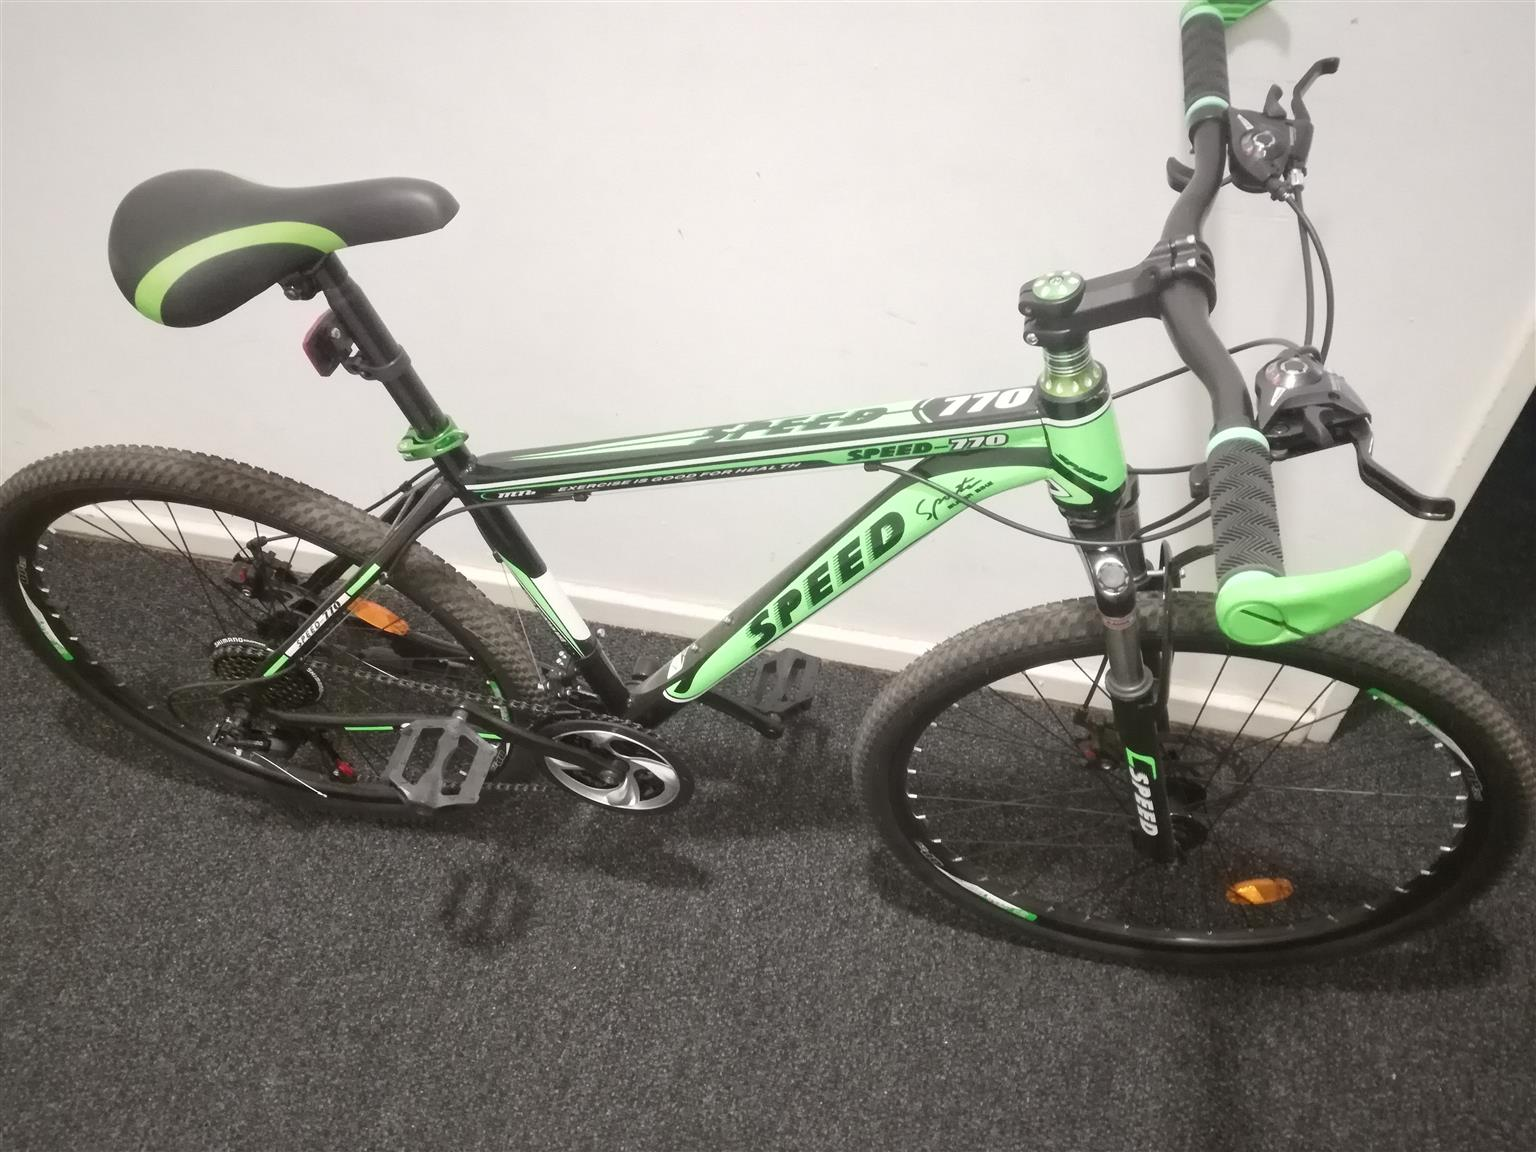 Speed 770 bicycle for sale